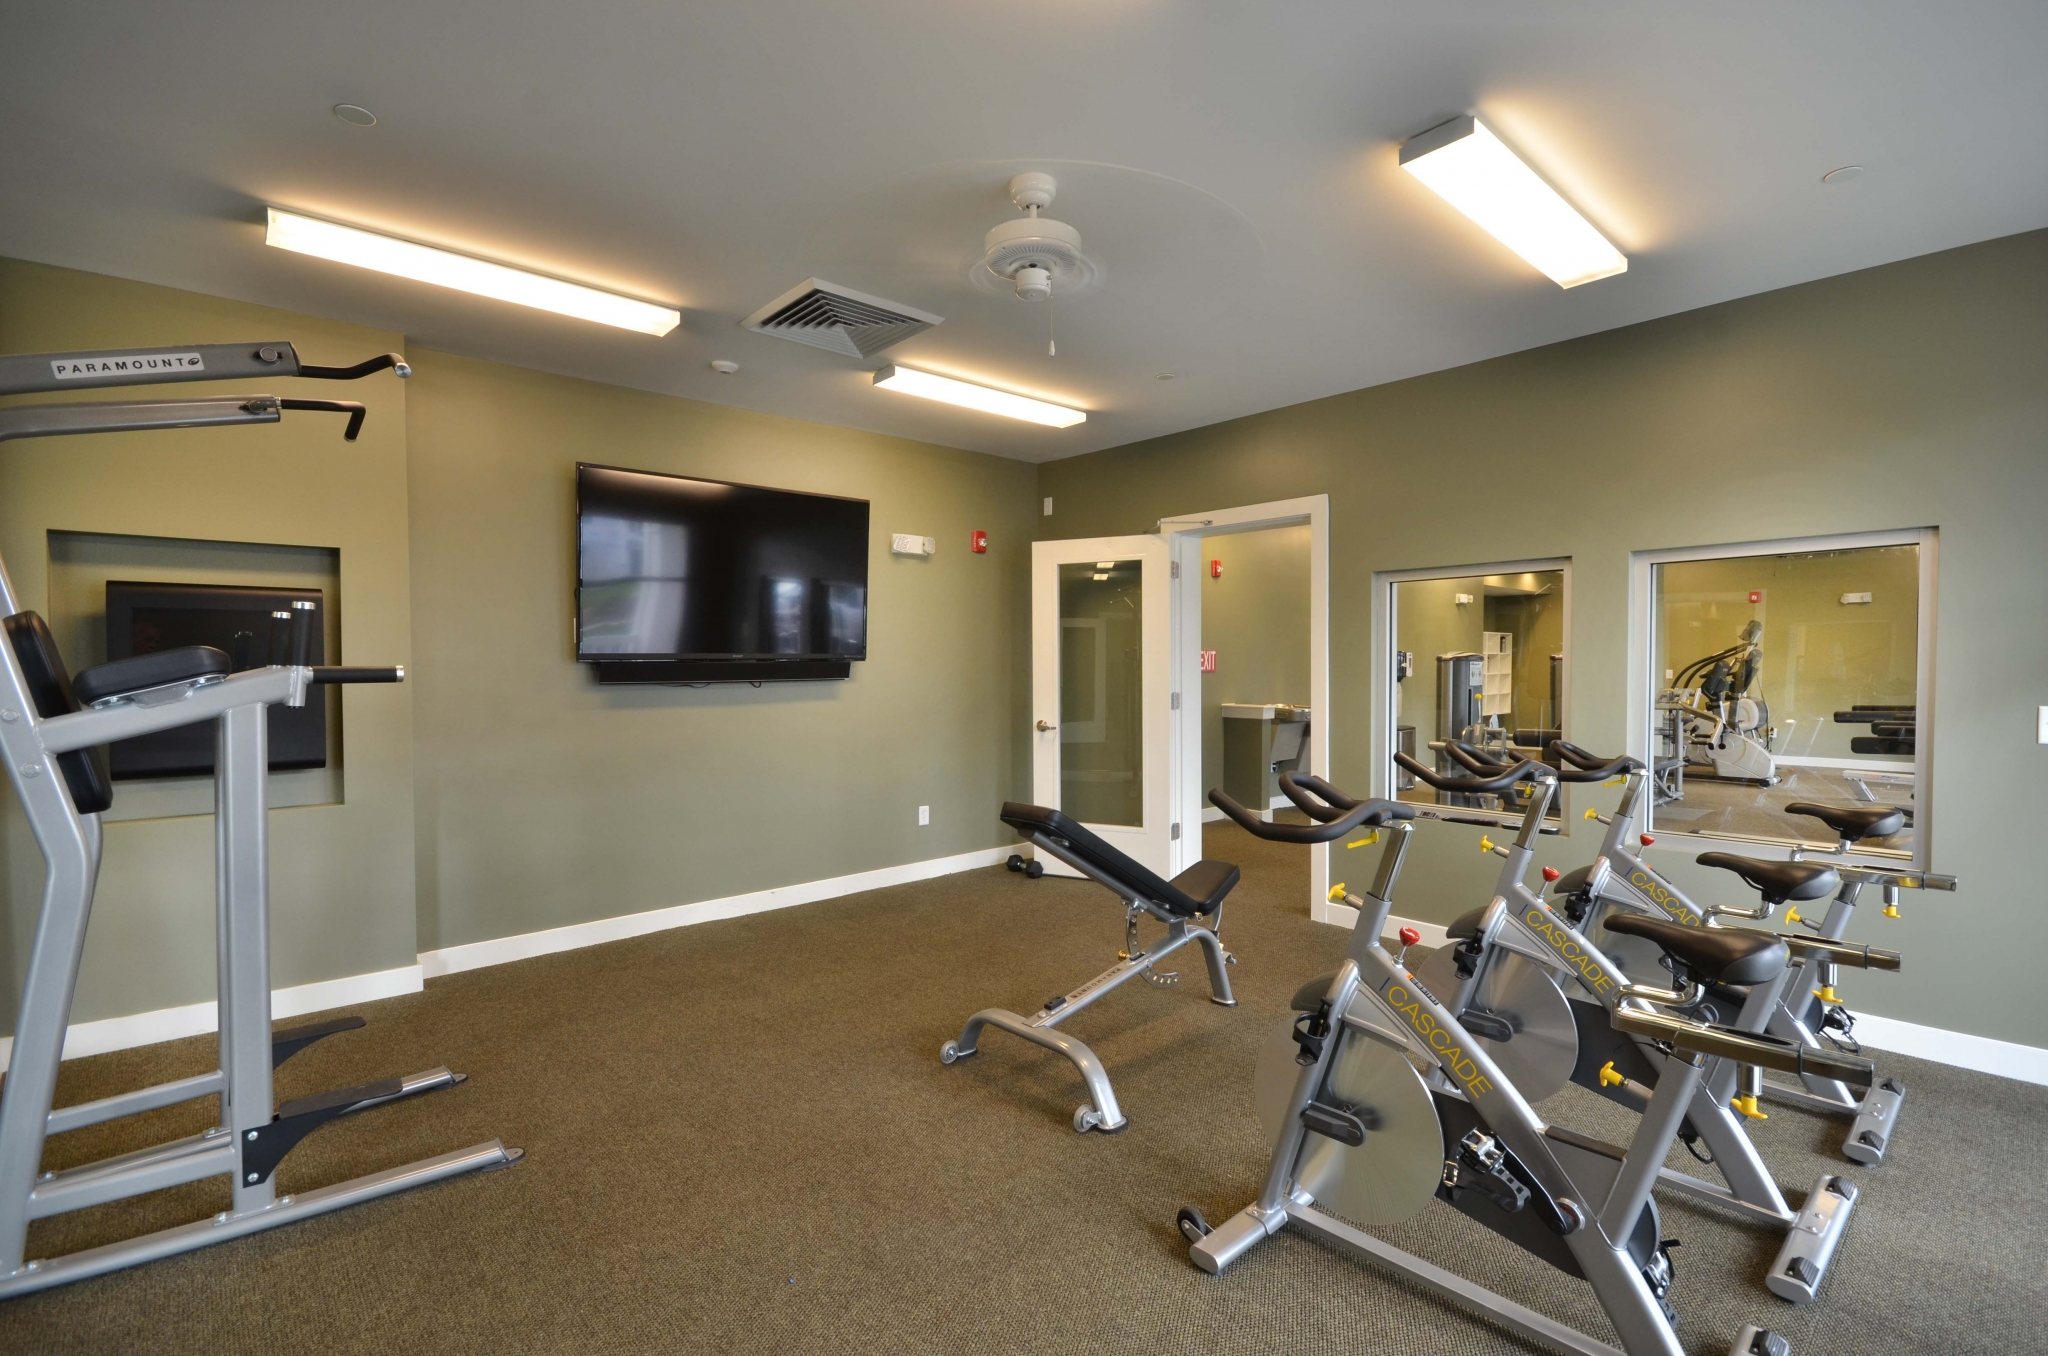 Back room of 24 hr fitness center showing bikes, fitness on demand and smith machine